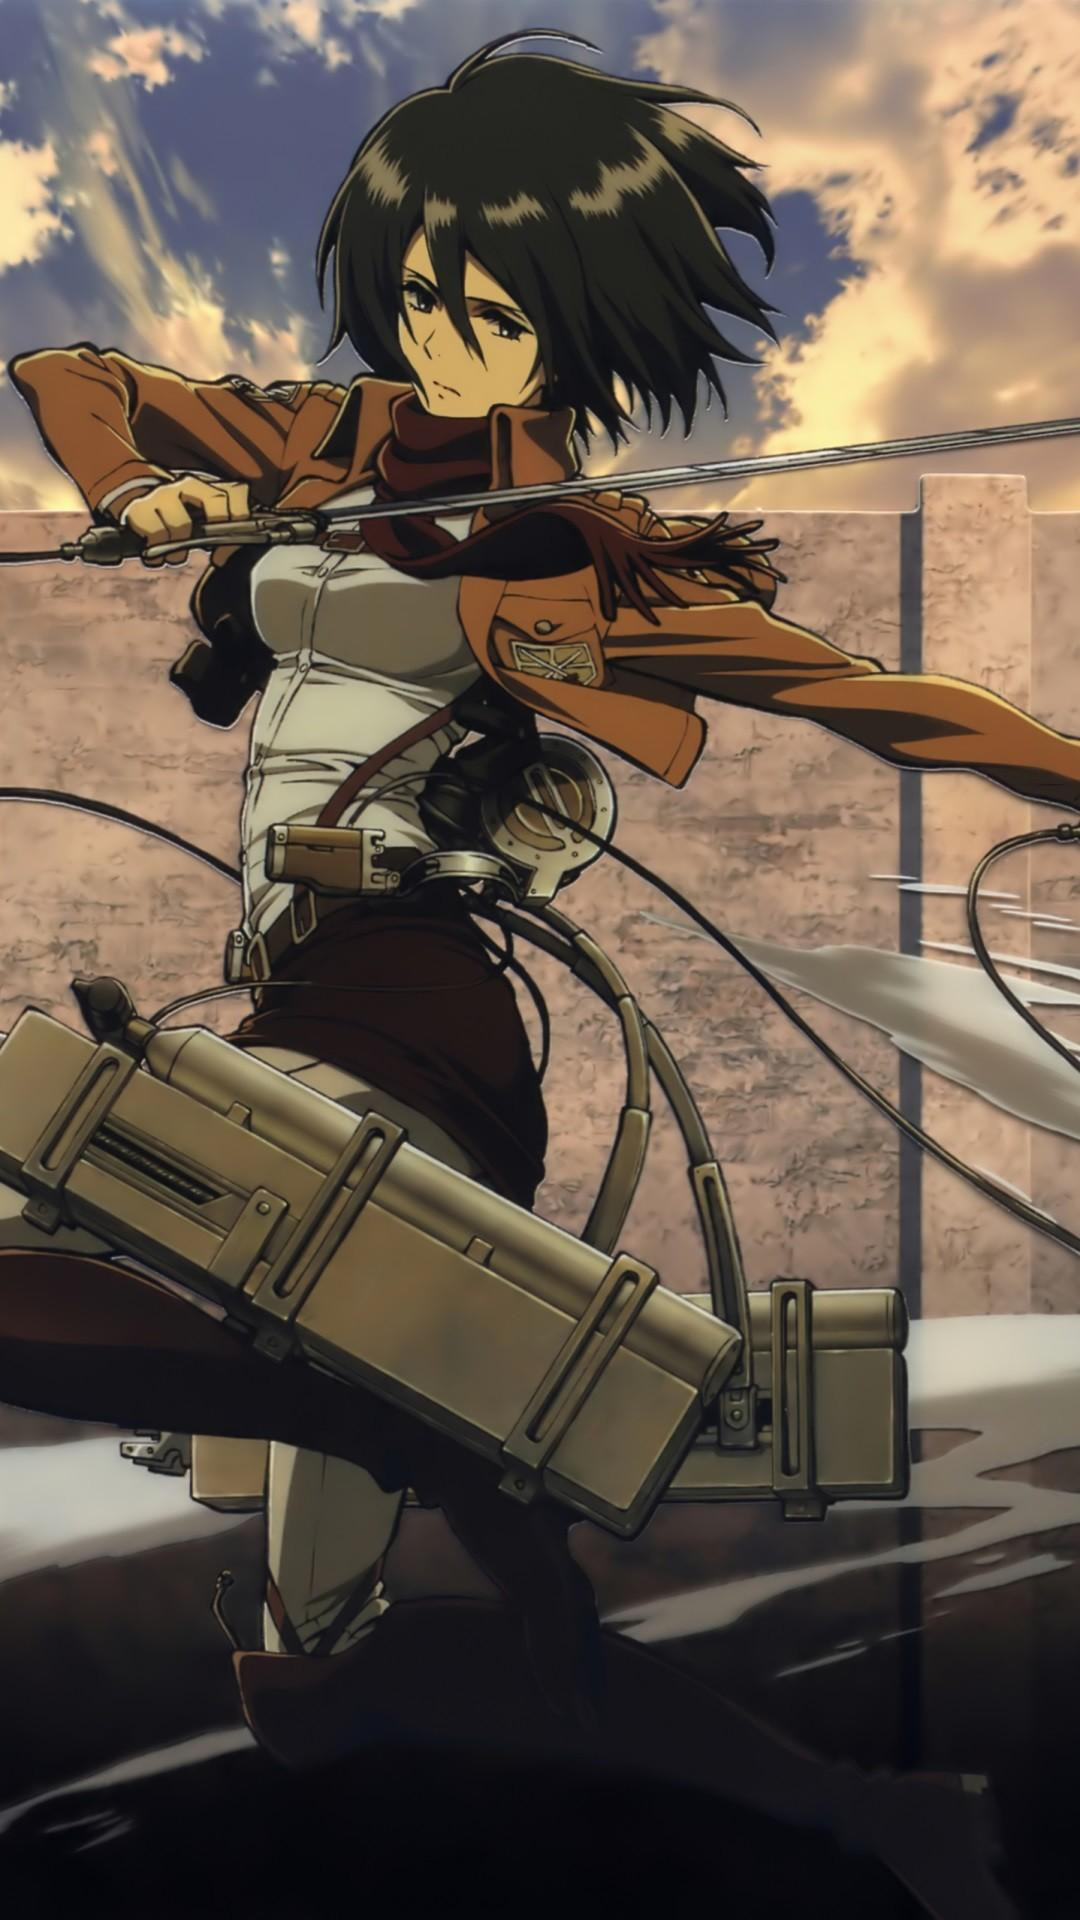 Advertisement platforms categories 0.1042015 user rating6 1/2 zip into the world of the popular ani. Aesthetic Attack On Titan Wallpapers - Wallpaper Cave